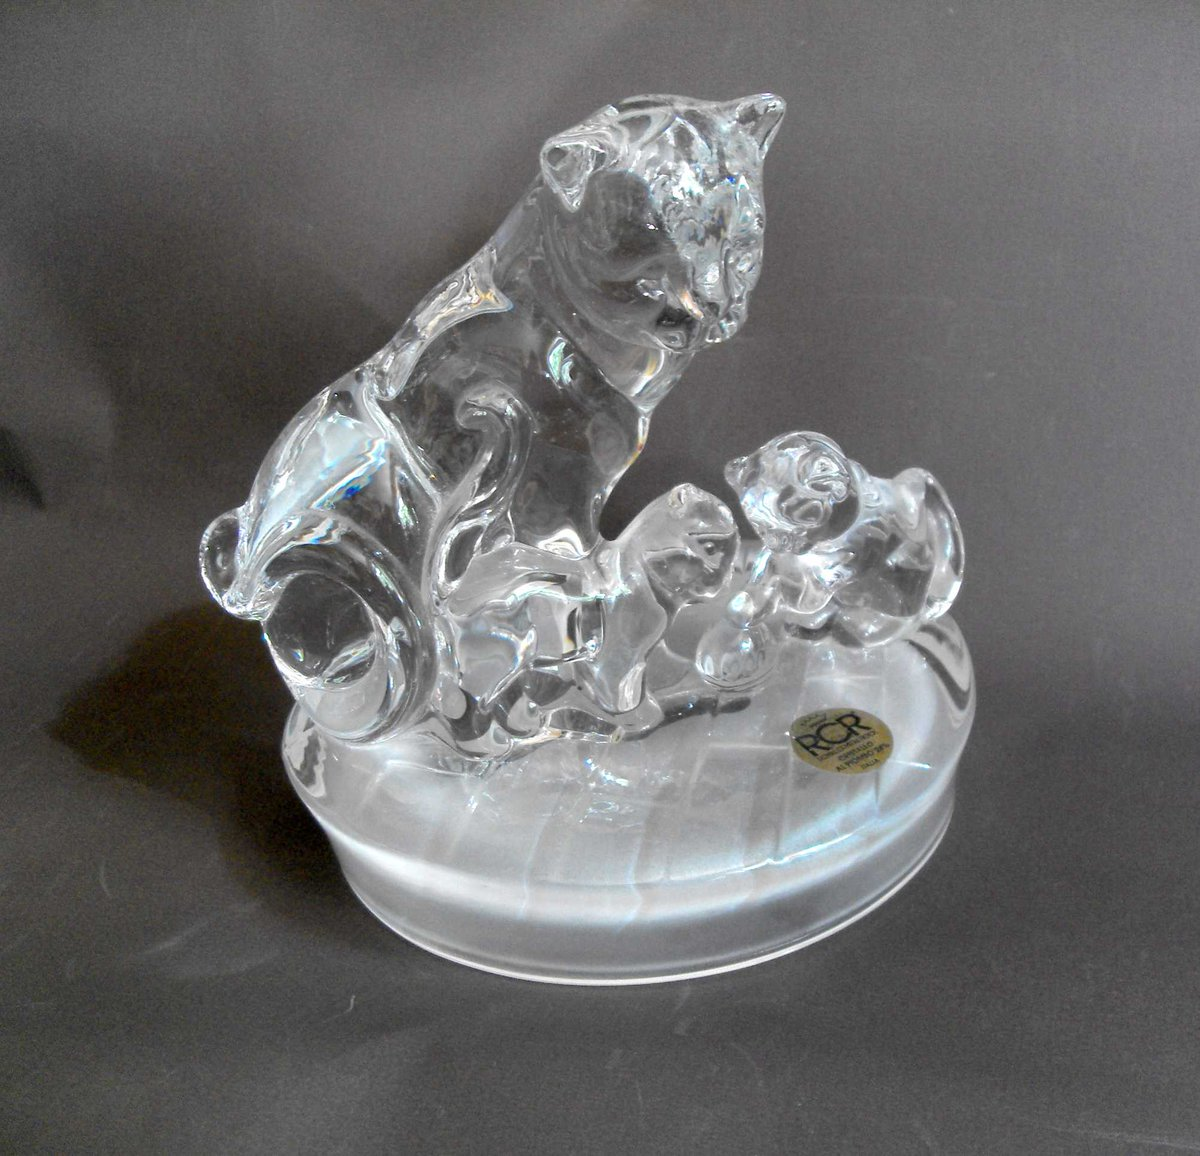 Large Italian RCR #crystal cat/kittens desk weight  Reasonable Offers considered Free UK Shipping #InspectAndCollect   http:// carterscollectablesuk.co.uk/Crystal-cat-/- kitten-deskweight &nbsp; …  #CCUK4S #antiqueclique #cats #desktop #kittens #pets #animals #ArtGlass #glass #retro #eShopsUK #noths #giftideas<br>http://pic.twitter.com/C8blMXbPio